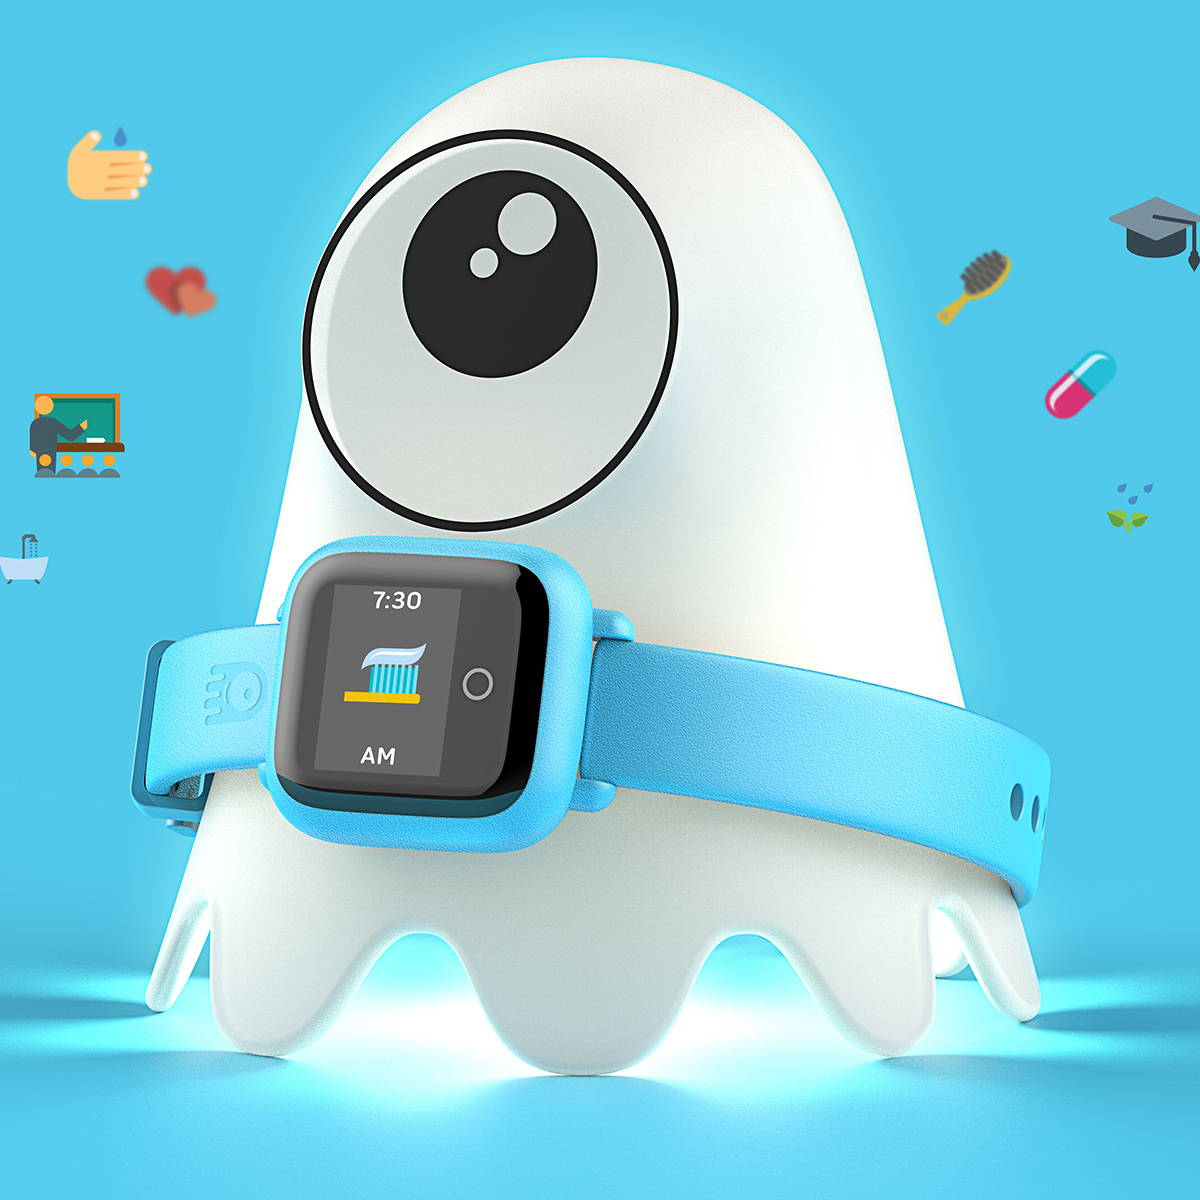 JOY FAMILYTECH | Octopus by JOY, the first icon-based watch